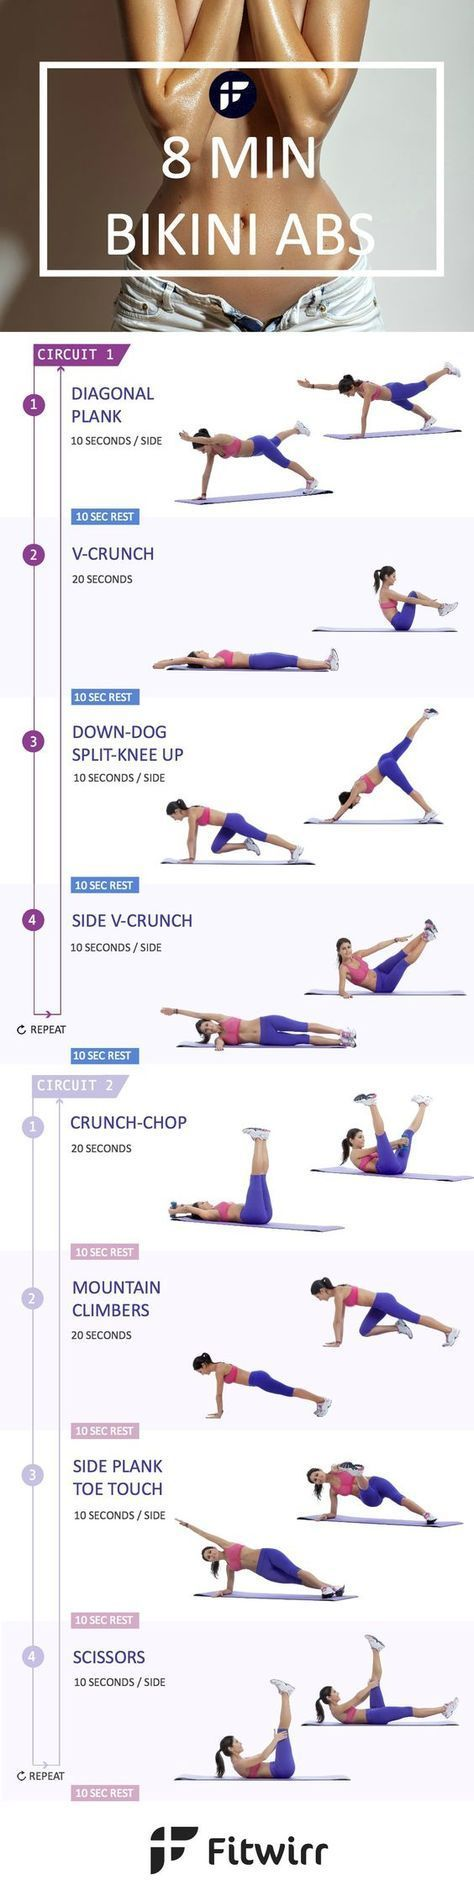 How to Lose Belly Fat Quick with 8 Minute Bikini Ab Workout - Fitness is life, fitness is BAE! <3 Tap the pin now to discover 3D Print Fitness Leggings from super hero leggings, gym leggings, fitness, leggings, and more that will make you scream YASS!!!